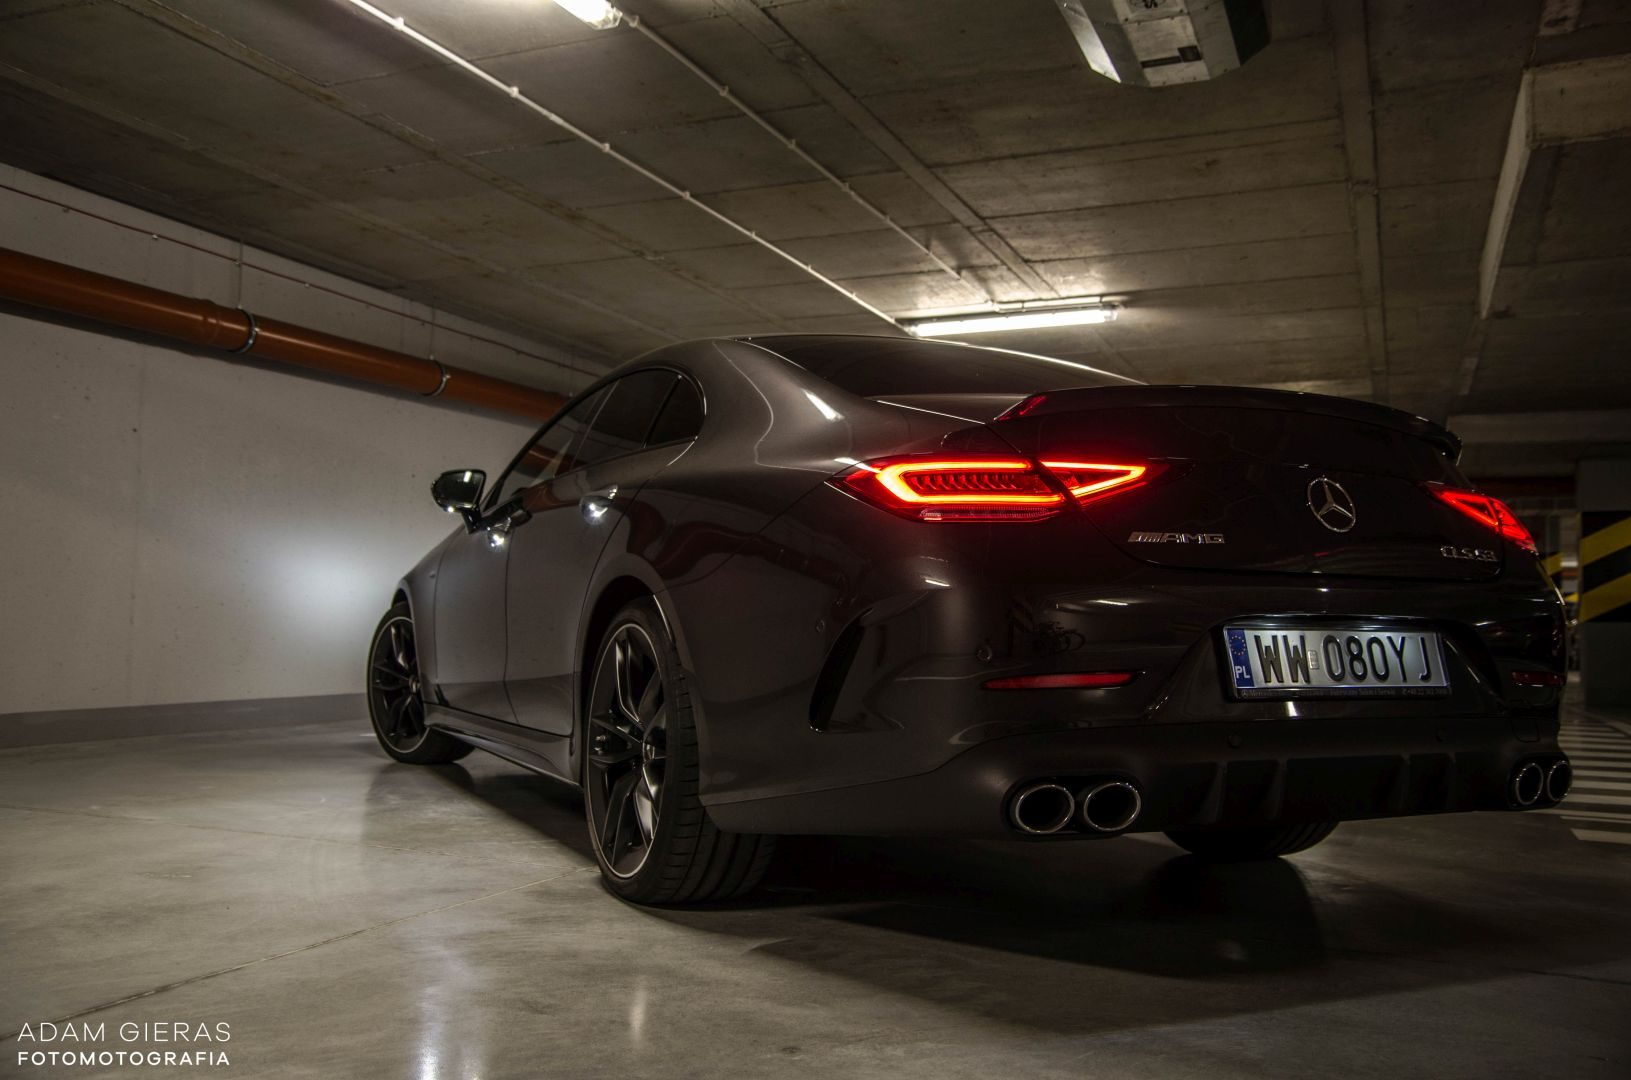 cls53 AMG 9